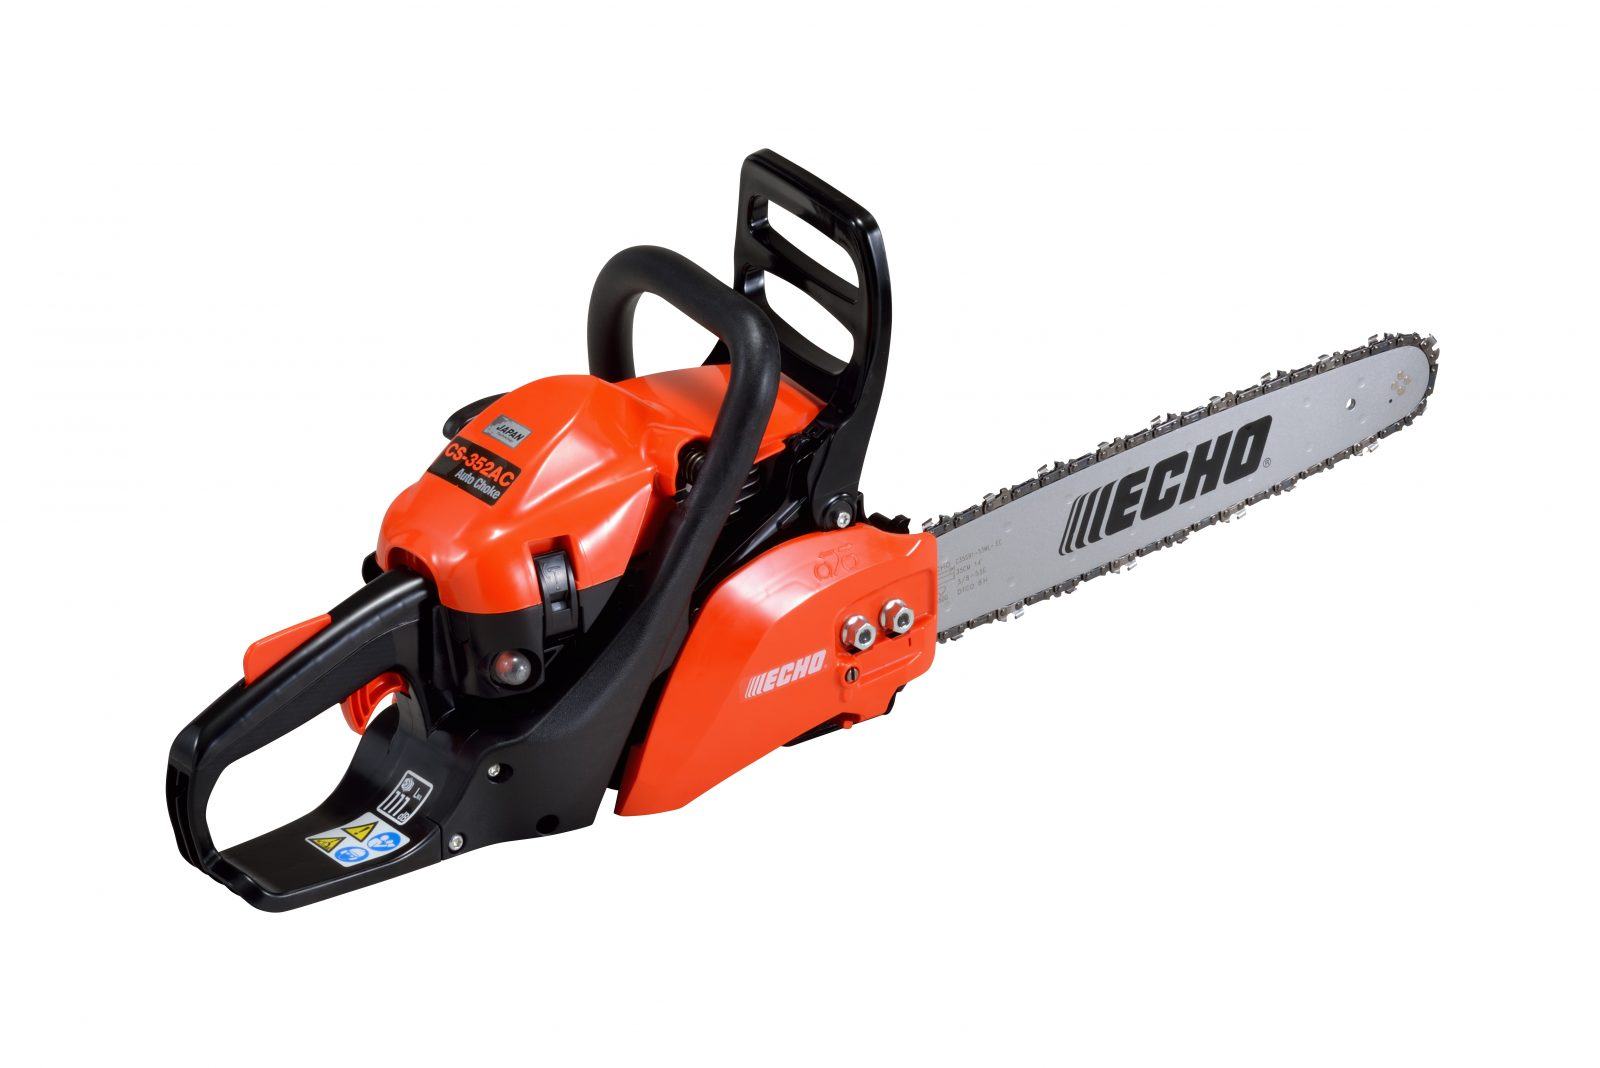 world's first chainsaw with Auto Choke